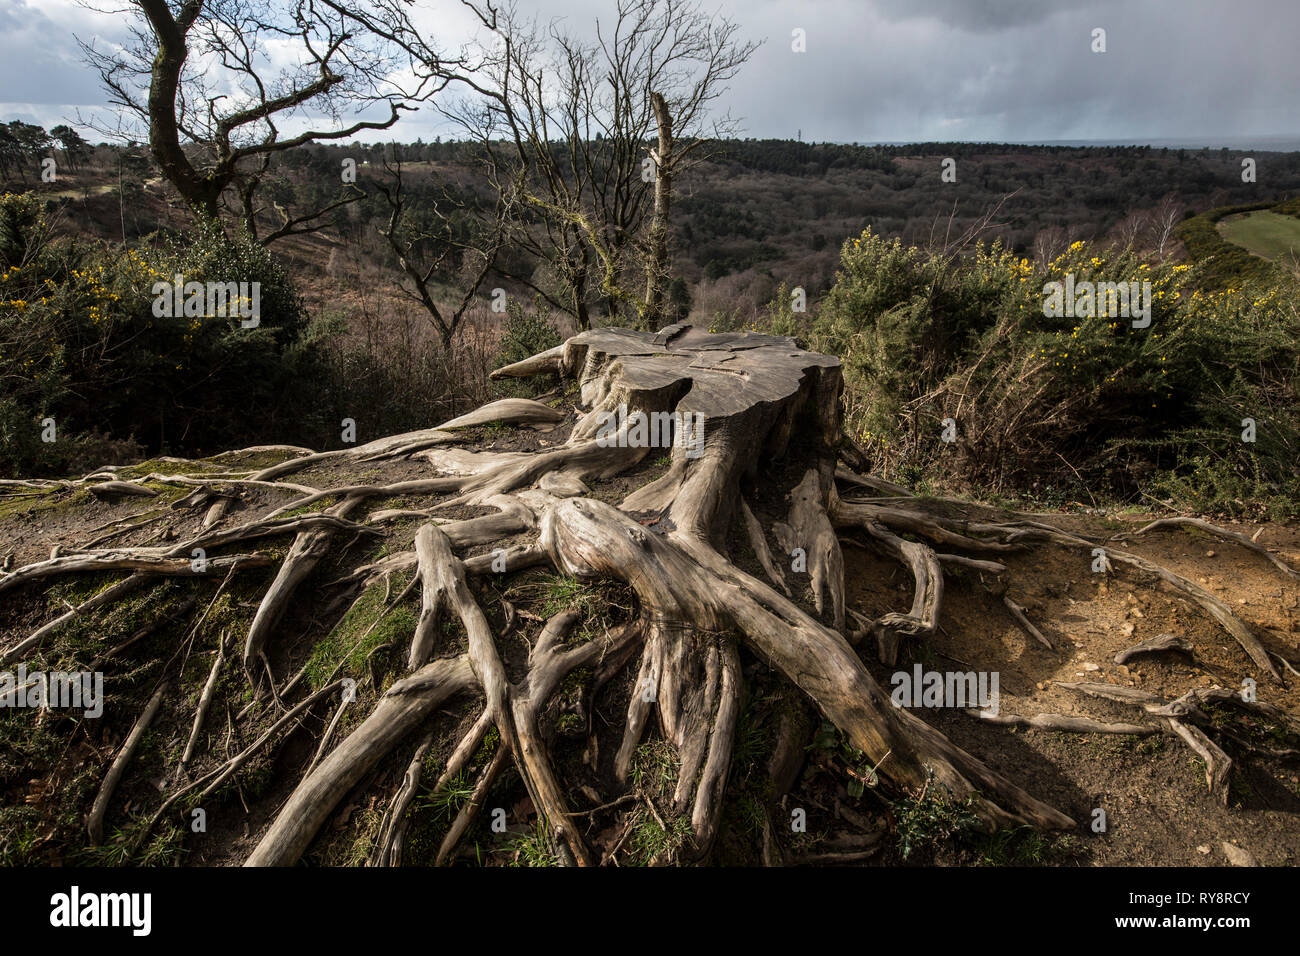 Devil's Punch Bowl, 282.2-hectare biological Site of Special Scientific Interest east of Hindhead in Surrey, England, United Kingdom - Stock Image